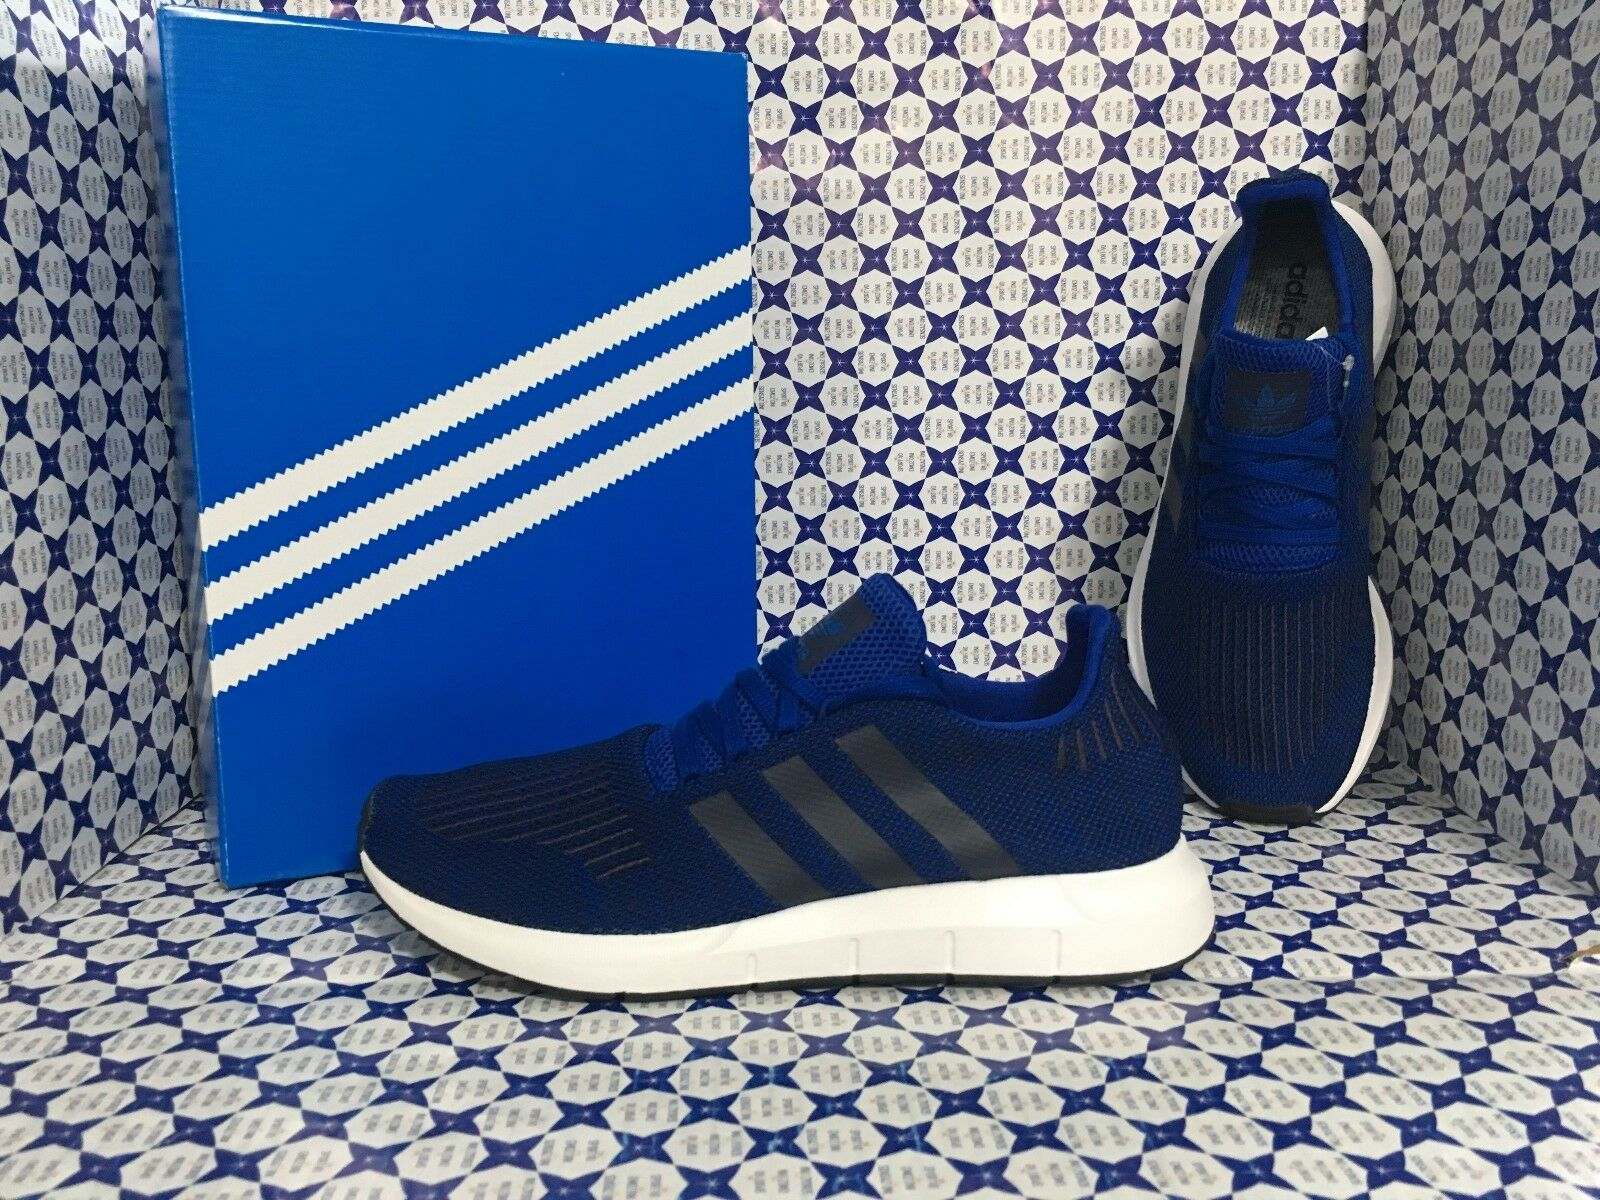 Scarpe ADIDAS Uomo - Swift Run CG4118 - Bluette Nero - CG4118 Run 07ba3e